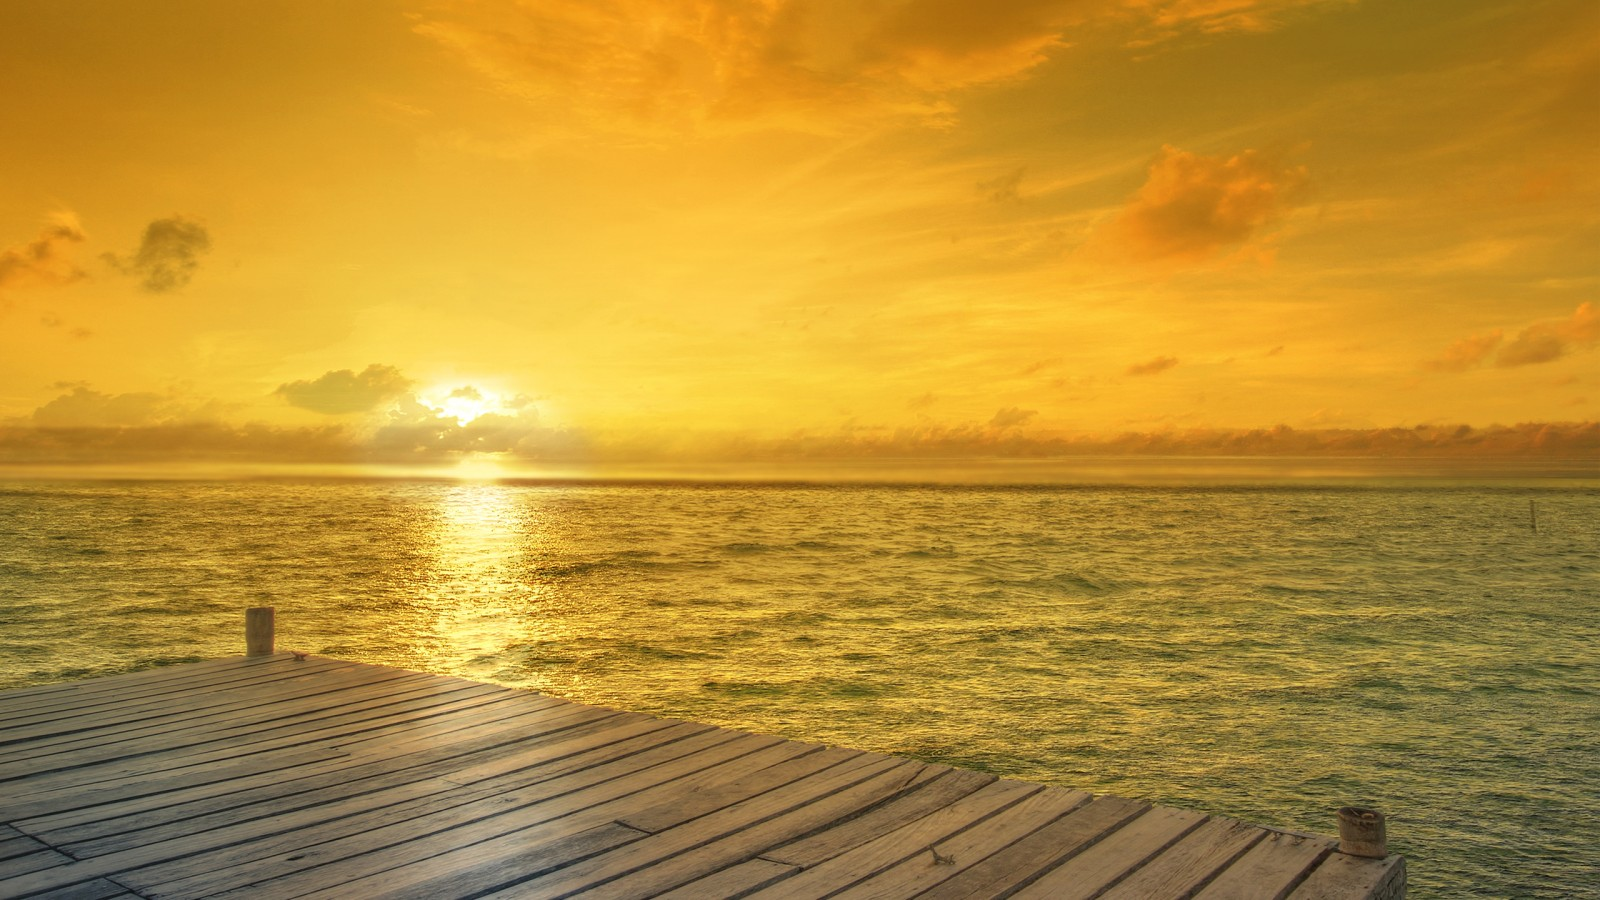 Cute Creative Wallpapers Beach Sunrise Horizon Wallpapers Hd Wallpapers Id 19644